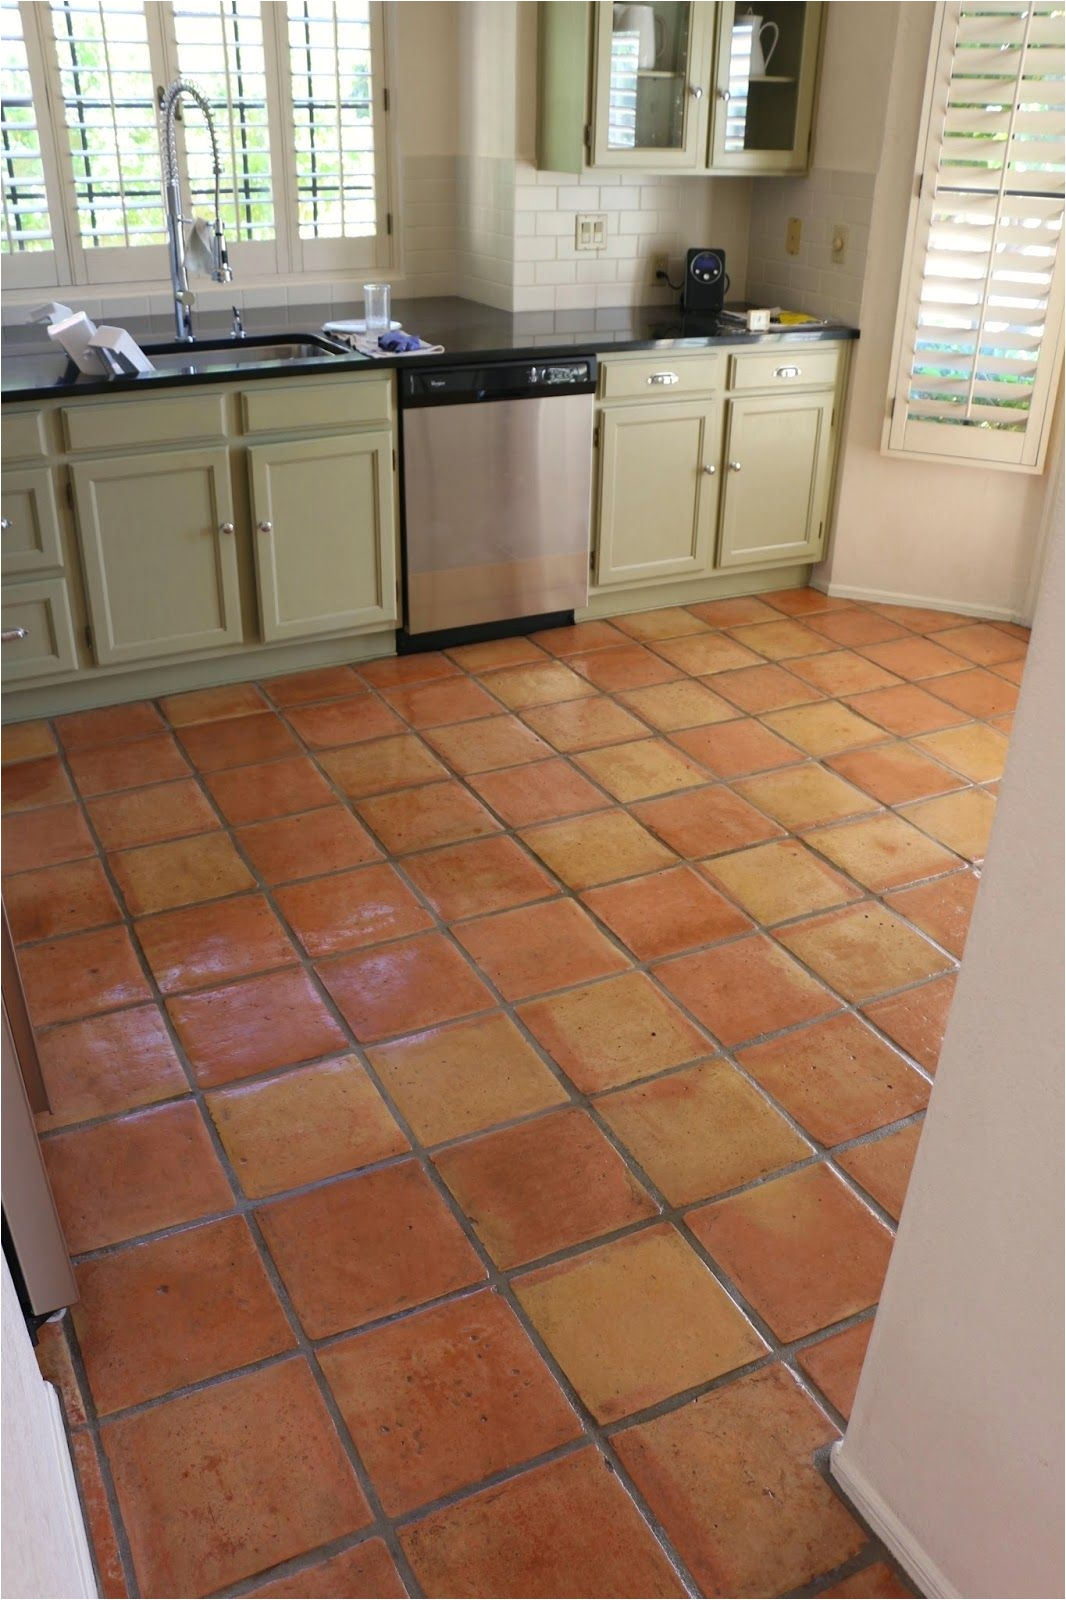 Best Polish For Tile Floors Dusty Coyote Stripping And Sealing A